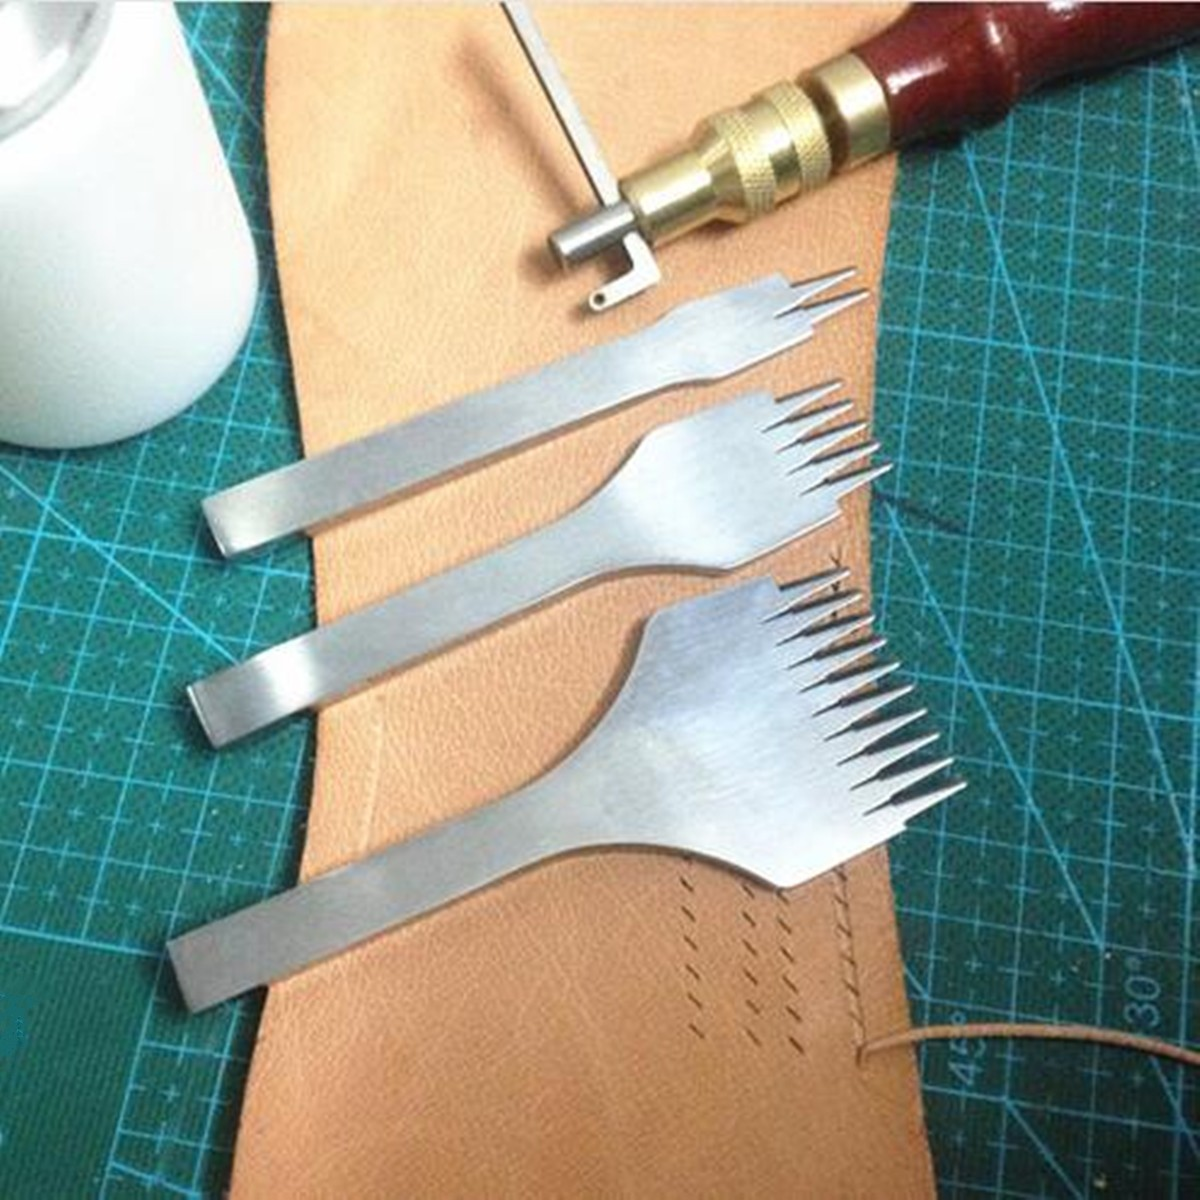 Can You Use Craft Hole Punches On Leather